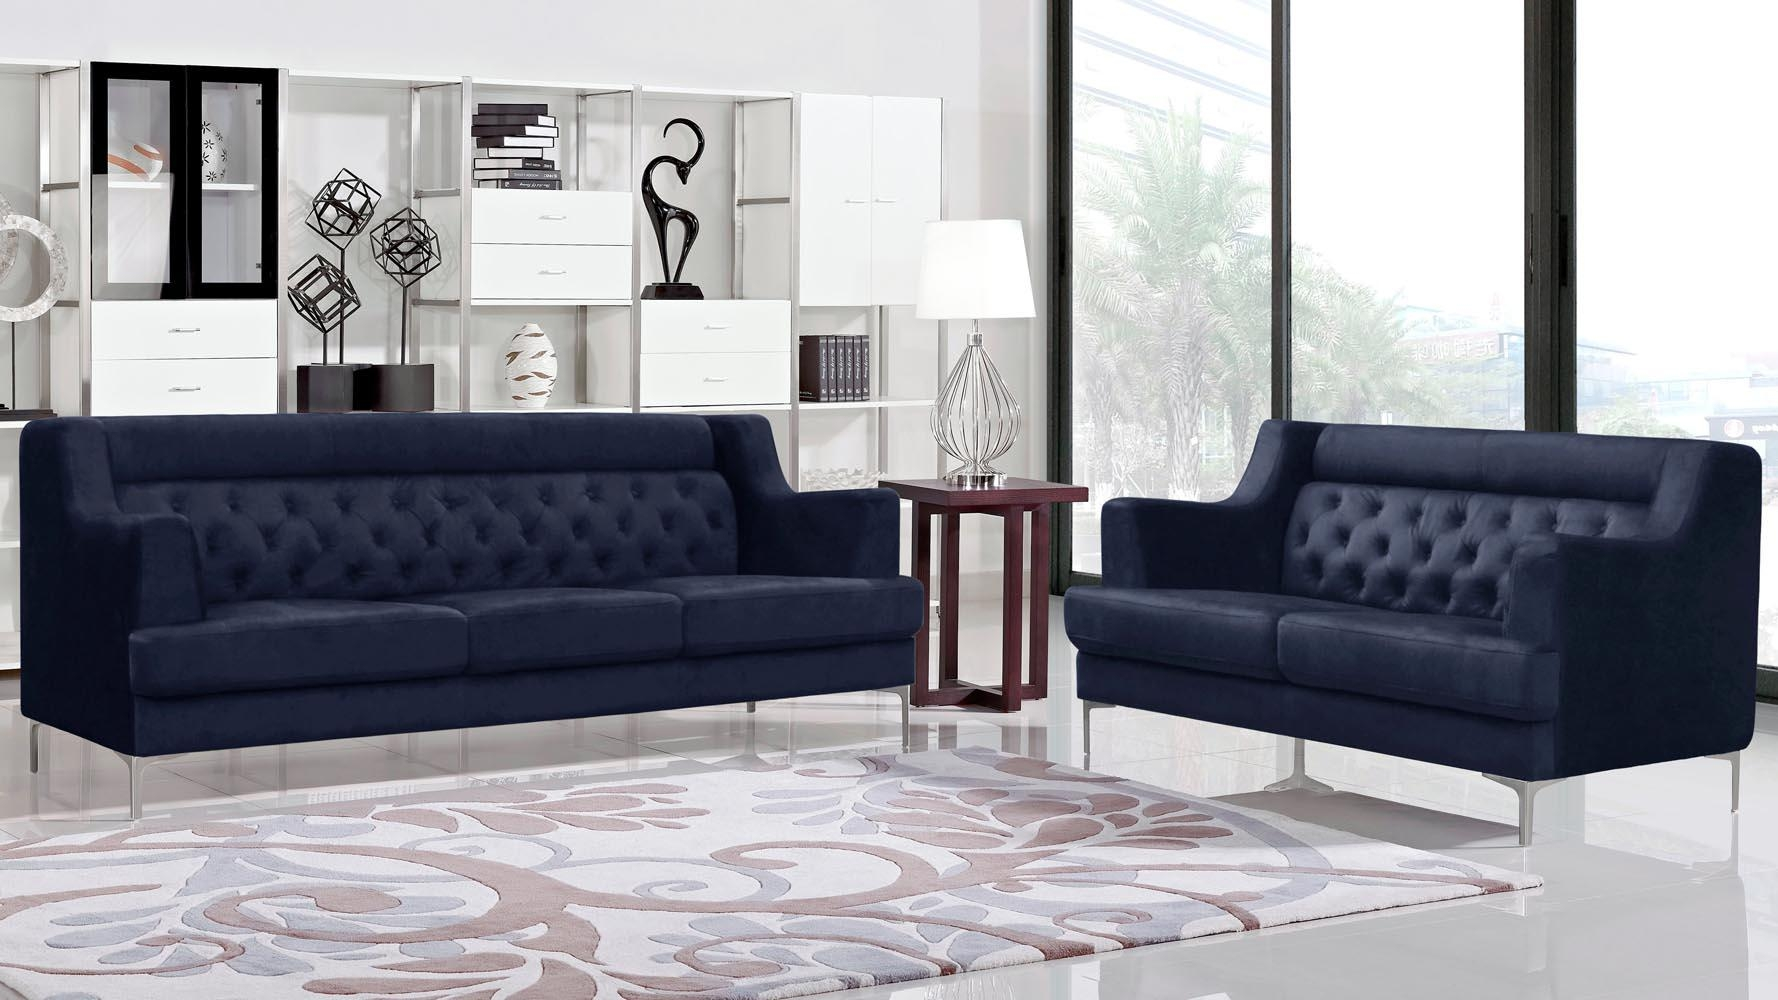 Zara Fabric Tufted Sofa With Chrome Legs - Navy Blue | Zuri Furniture within Blue Tufted Sofas